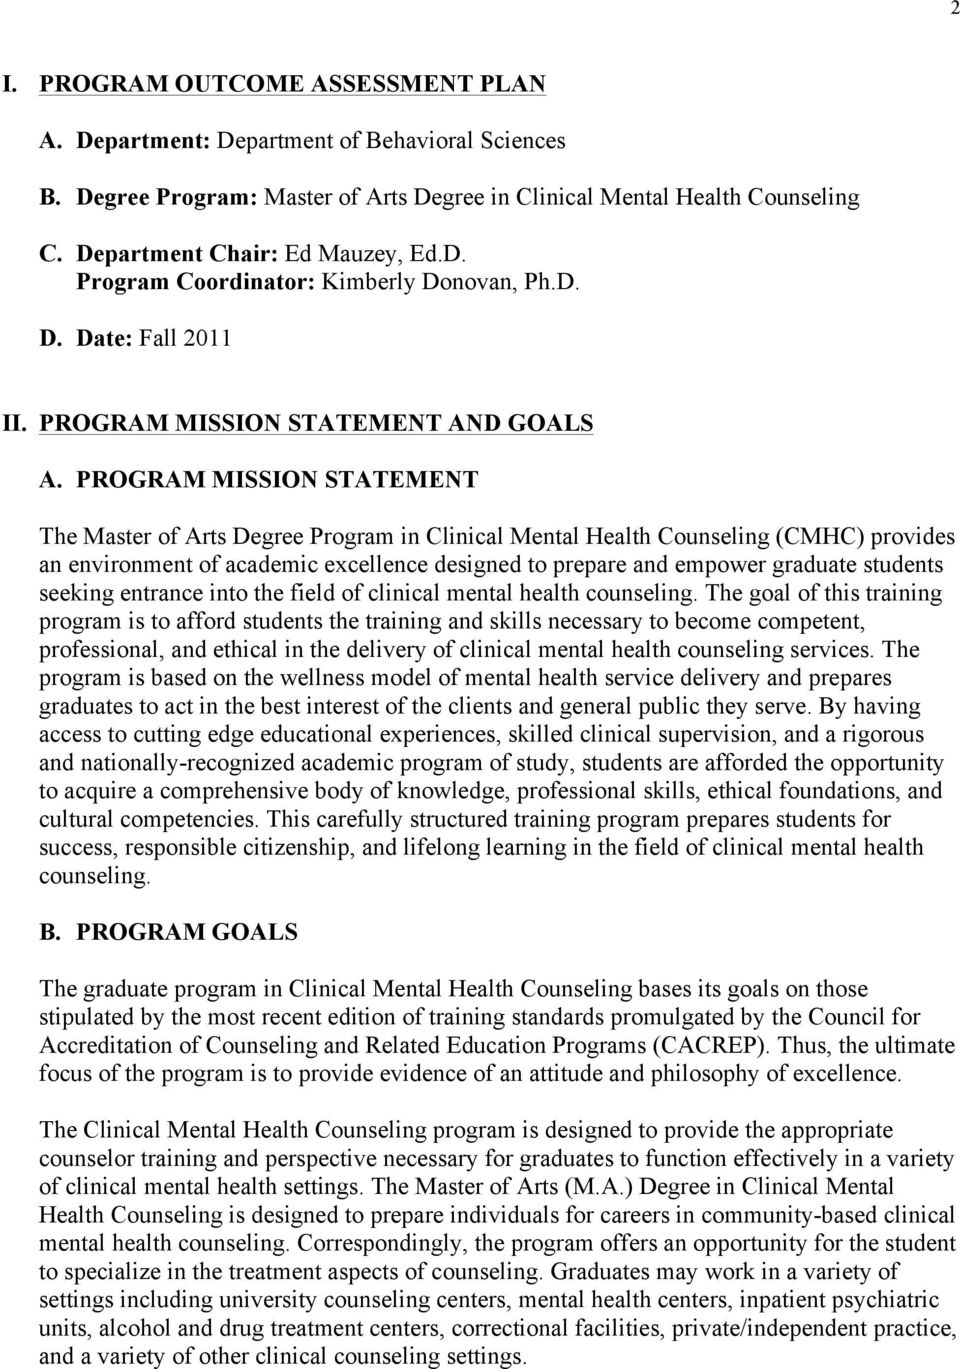 PROGRAM MISSION STATEMENT The Master of Arts Degree Program in Clinical Mental Health Counseling (CMHC) provides an environment of academic excellence designed to prepare and empower graduate